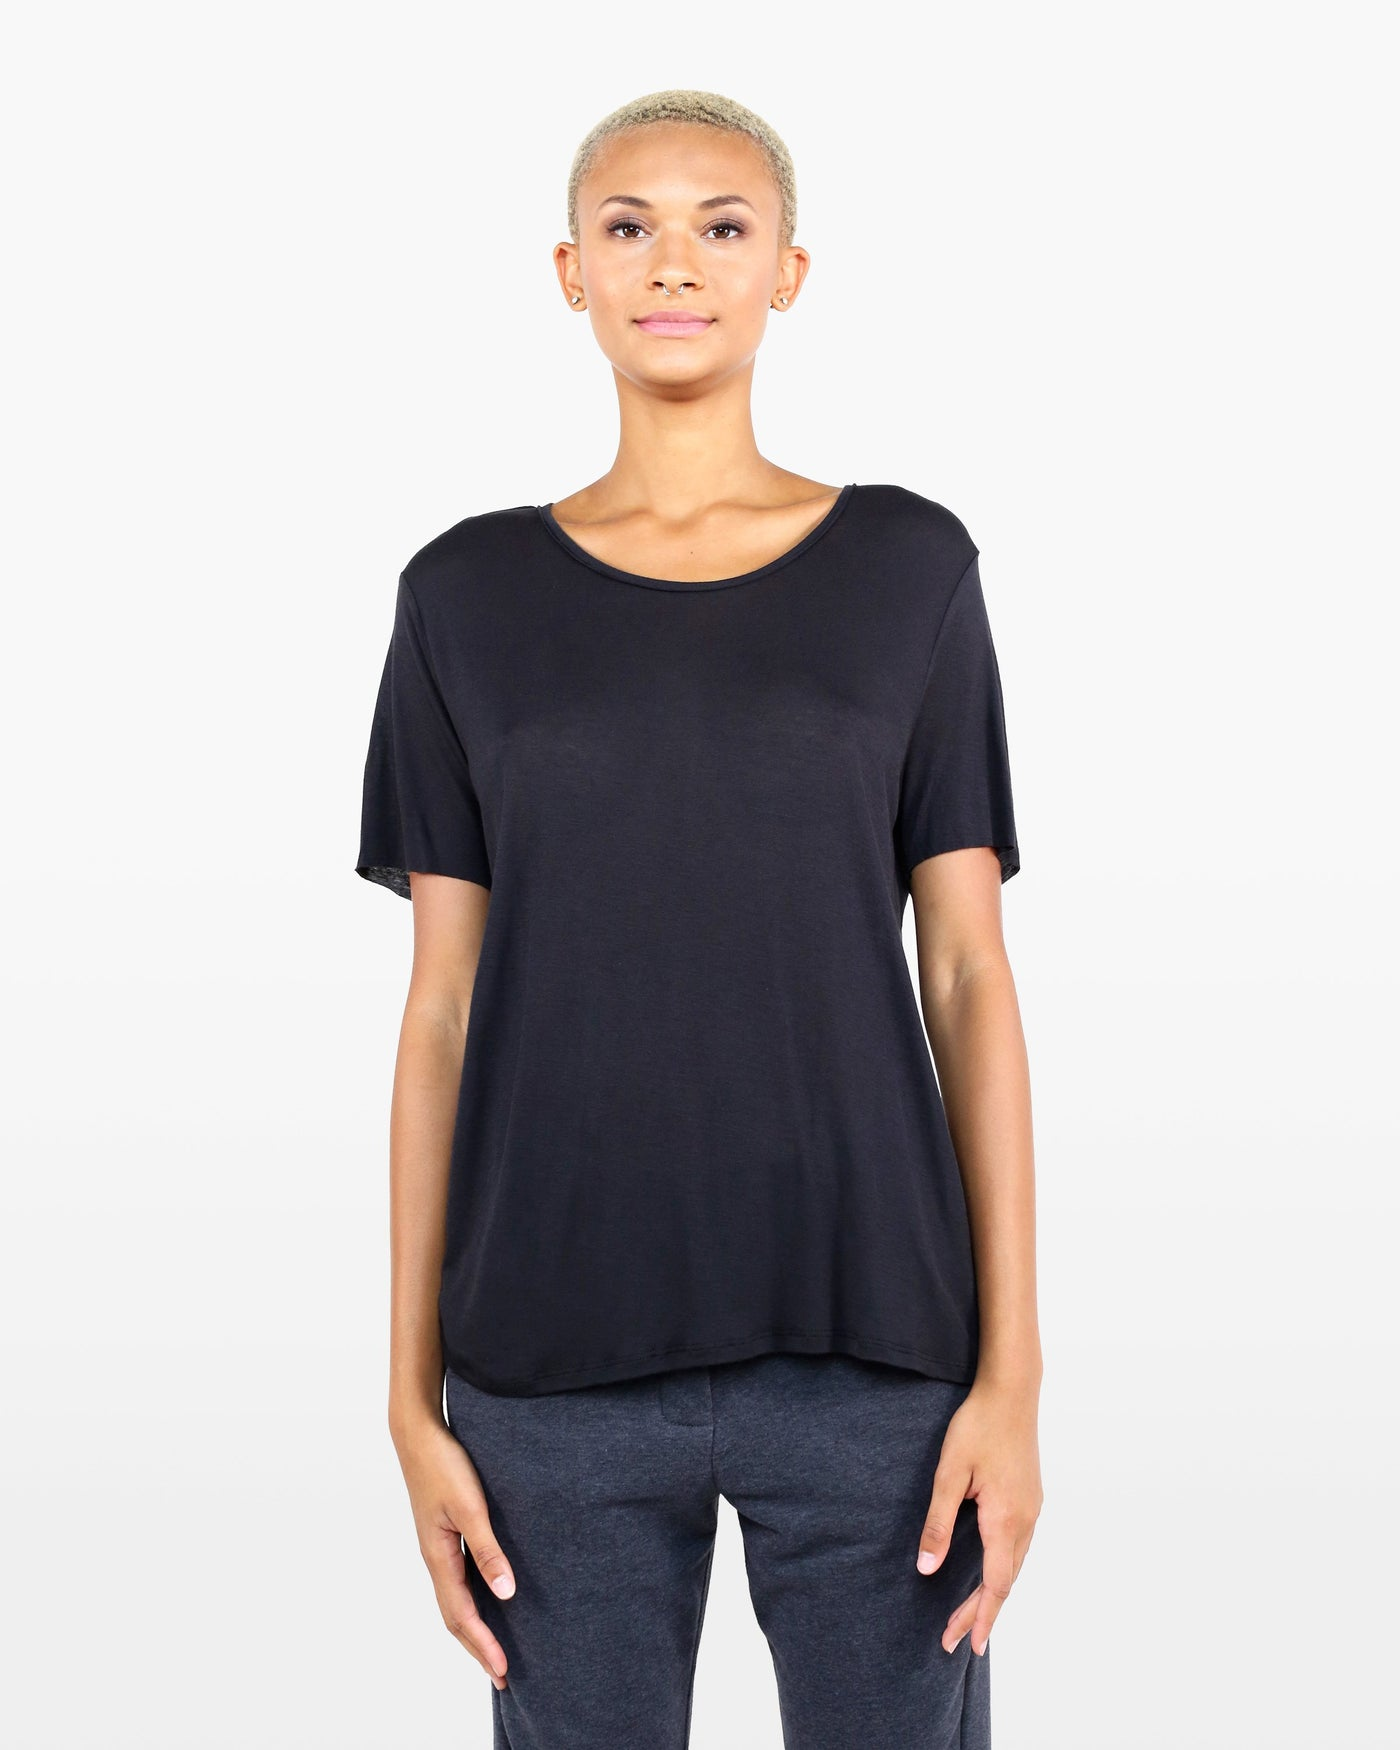 Avery Tee FIC in black